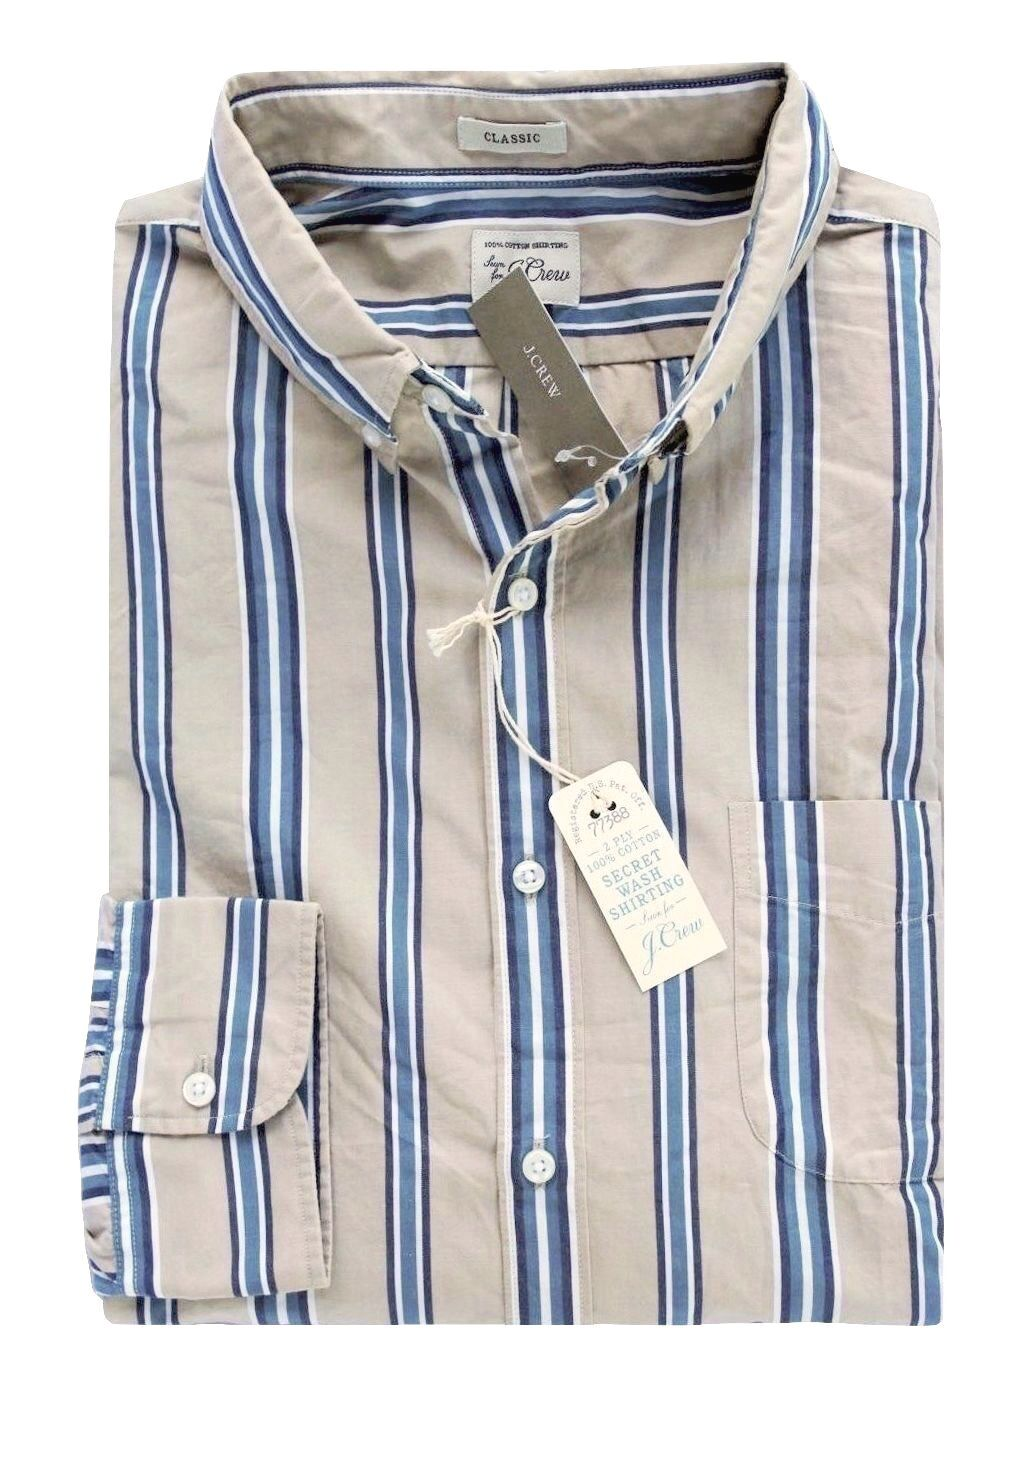 J Crew - Men's XL - Classic Fit - NWT - Khaki bluee Striped Secret Wash Shirt